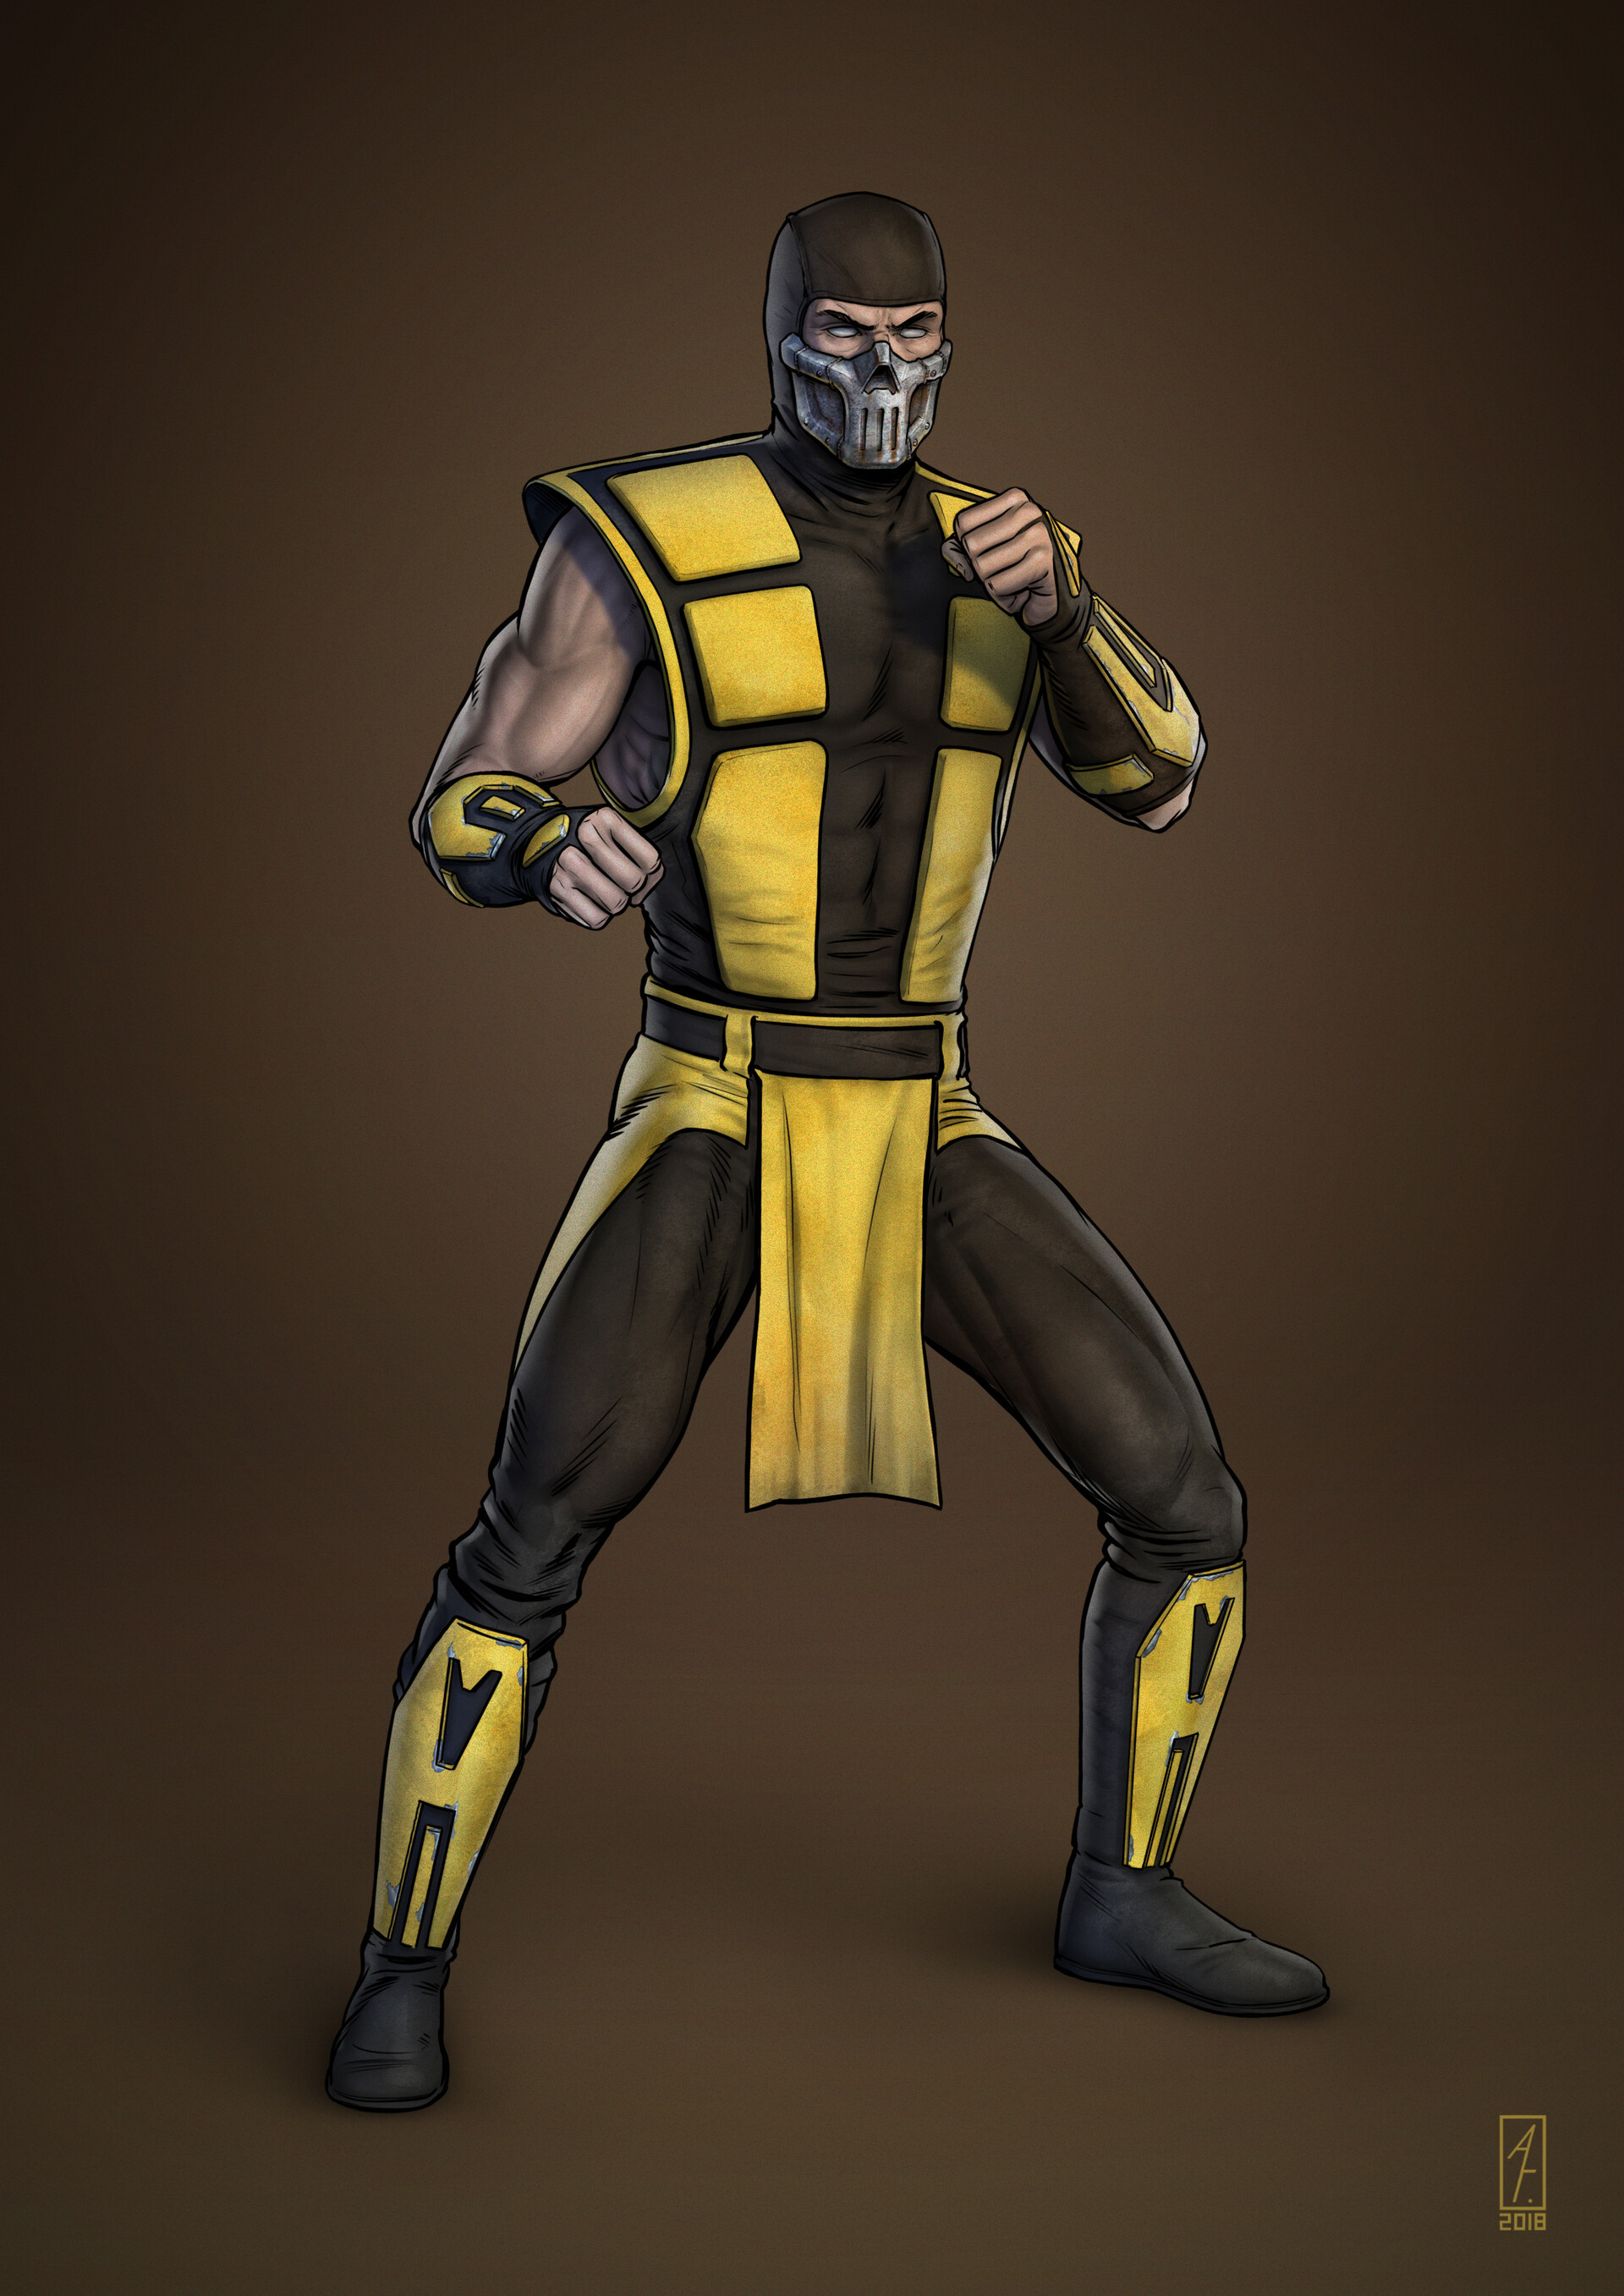 ArtStation - SCORPION MORTAL KOMBAT 3 ULTIMATE, ANDREY